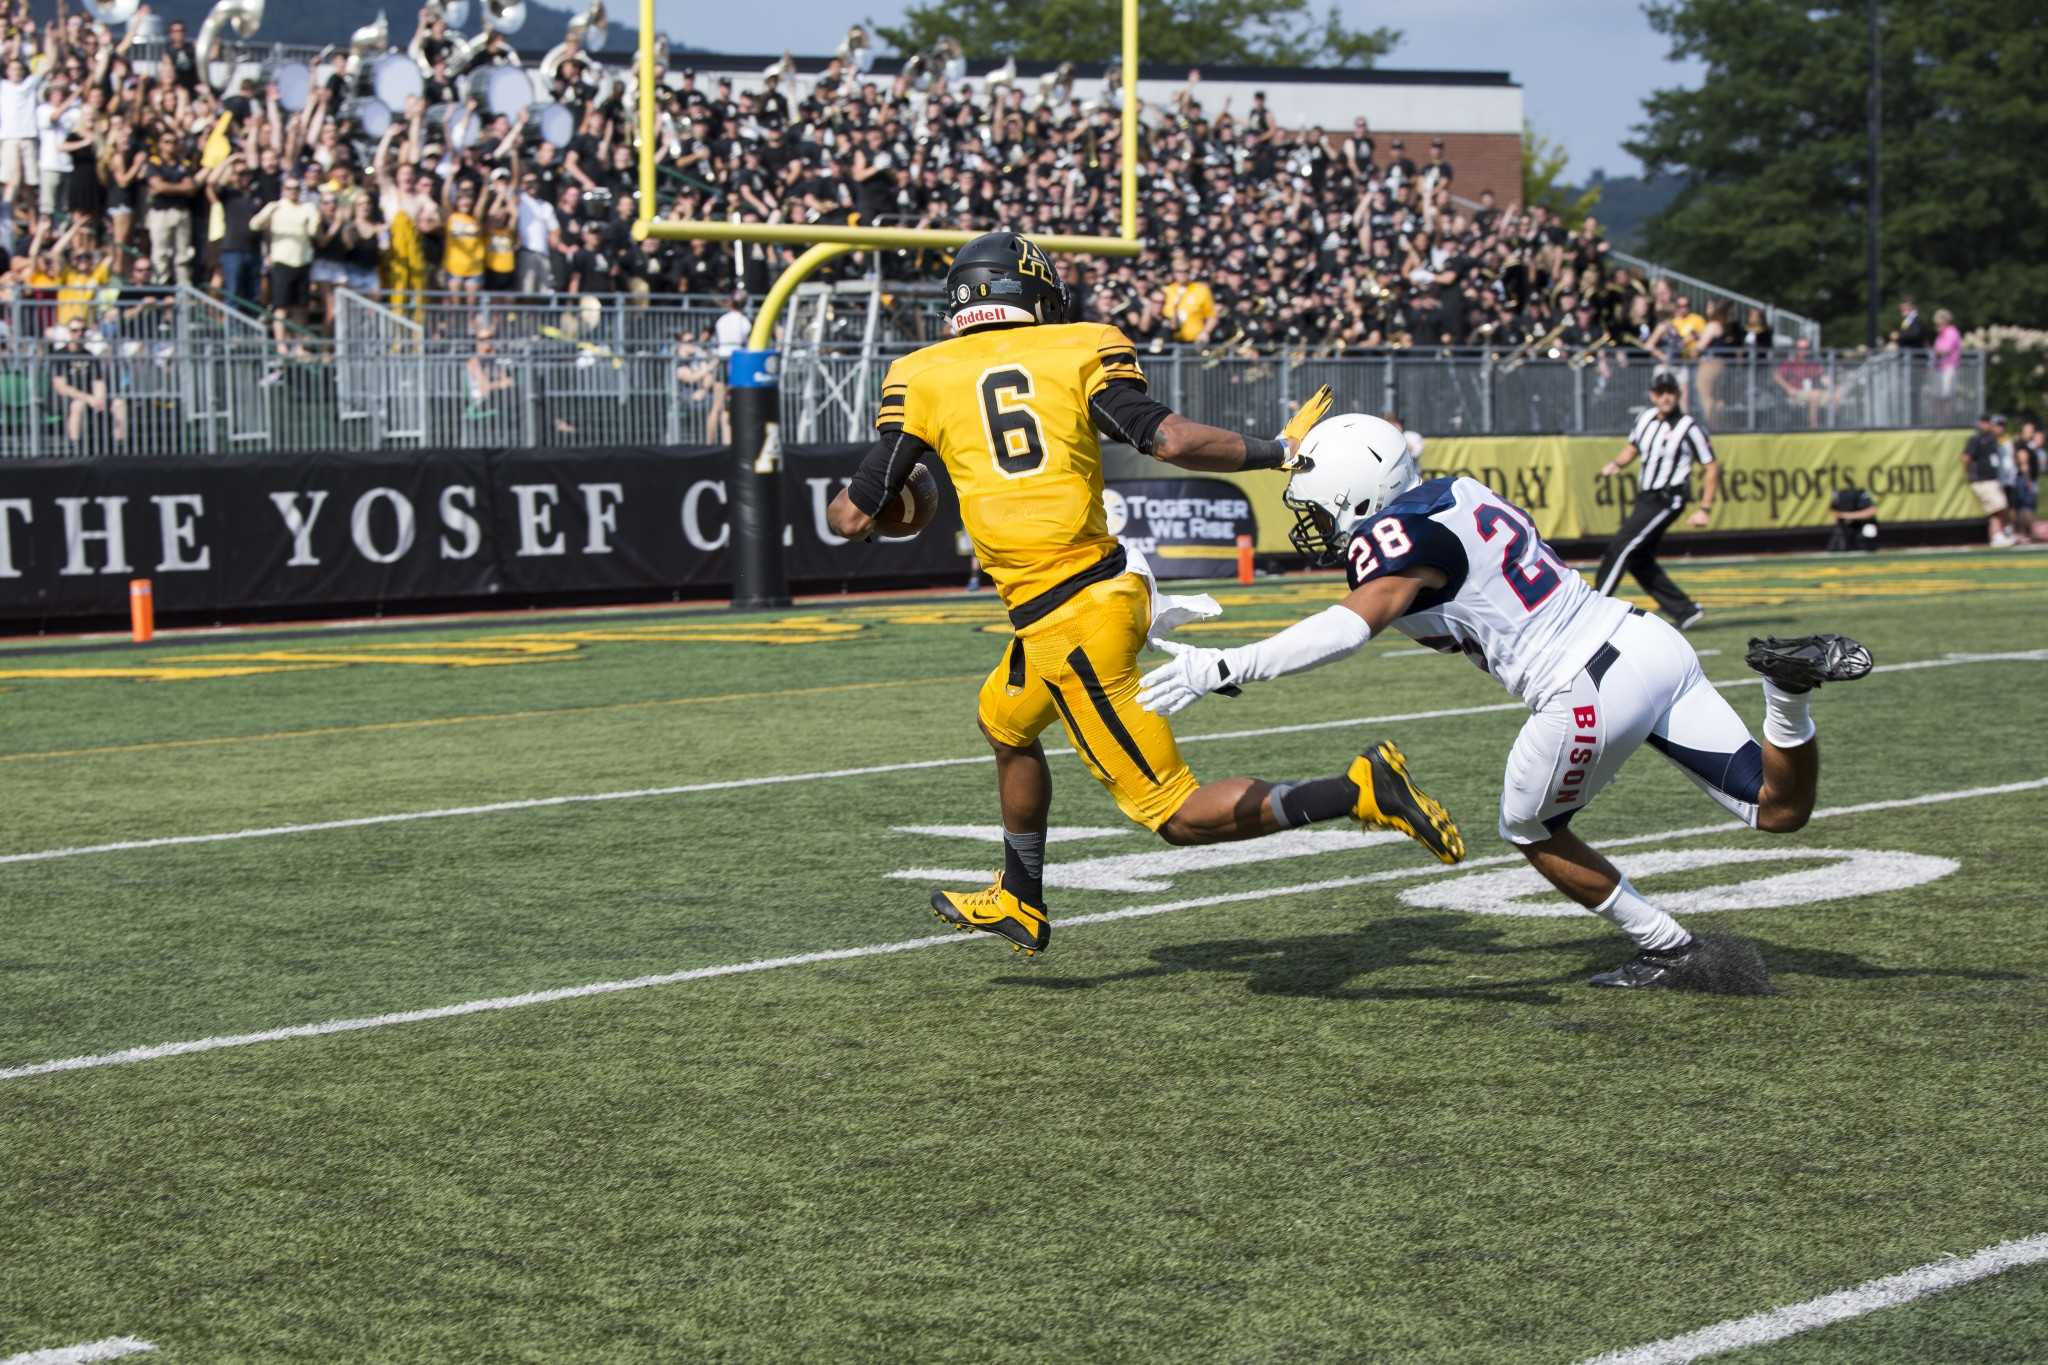 Sophomore+receiver+Shaedon+Meadors+breaks+free+of+a+tackle+en+route+to+a+Mountaineer+touchdown.+App+State+topped+Howard+49-0+in+their+season+opener.